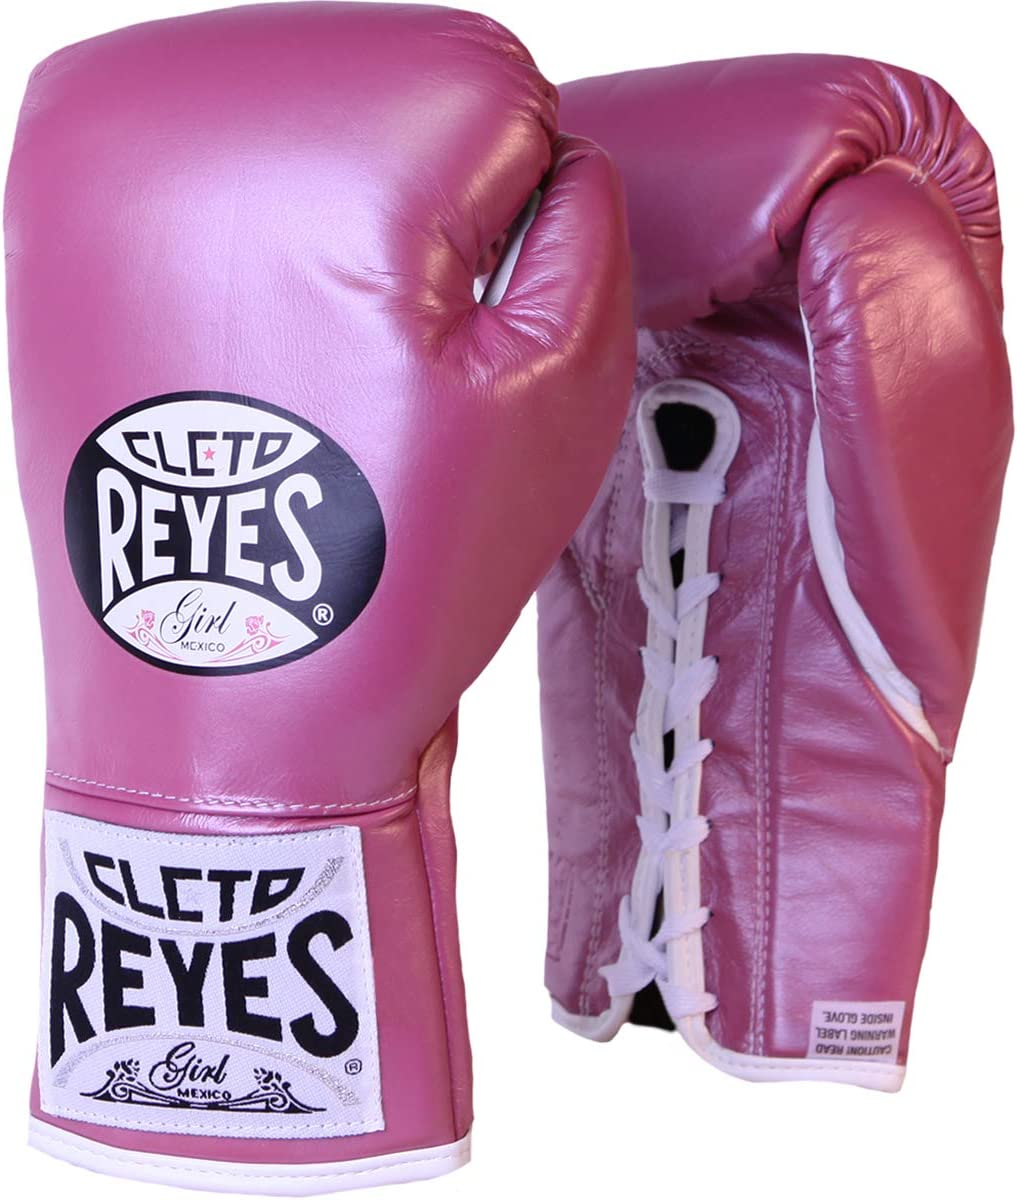 CLETO REYES Women's 定価の67%OFF Official Lace Up oz. Gloves - 8 再販ご予約限定送料無料 Fight Boxing